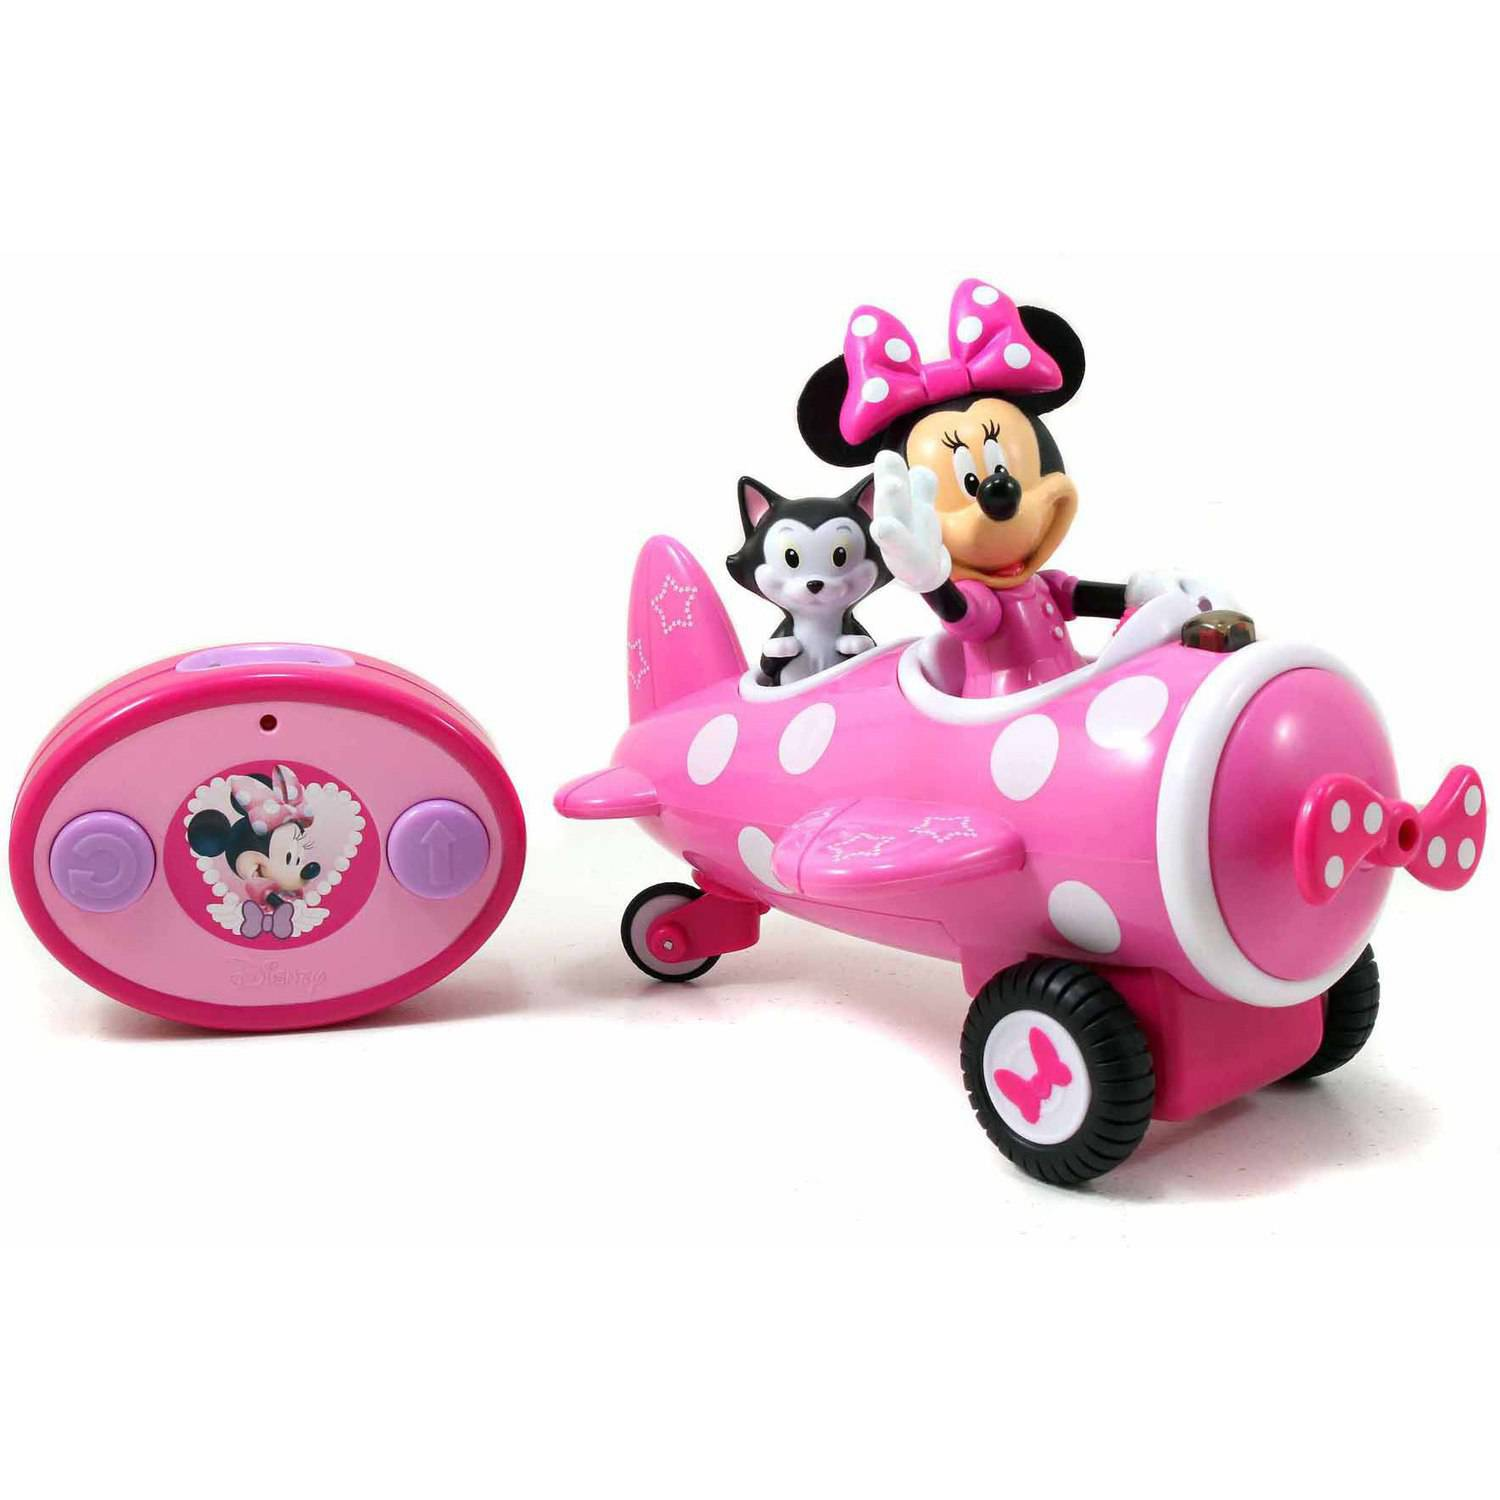 Disney Minnie Mouse R/C Airplane, Pink